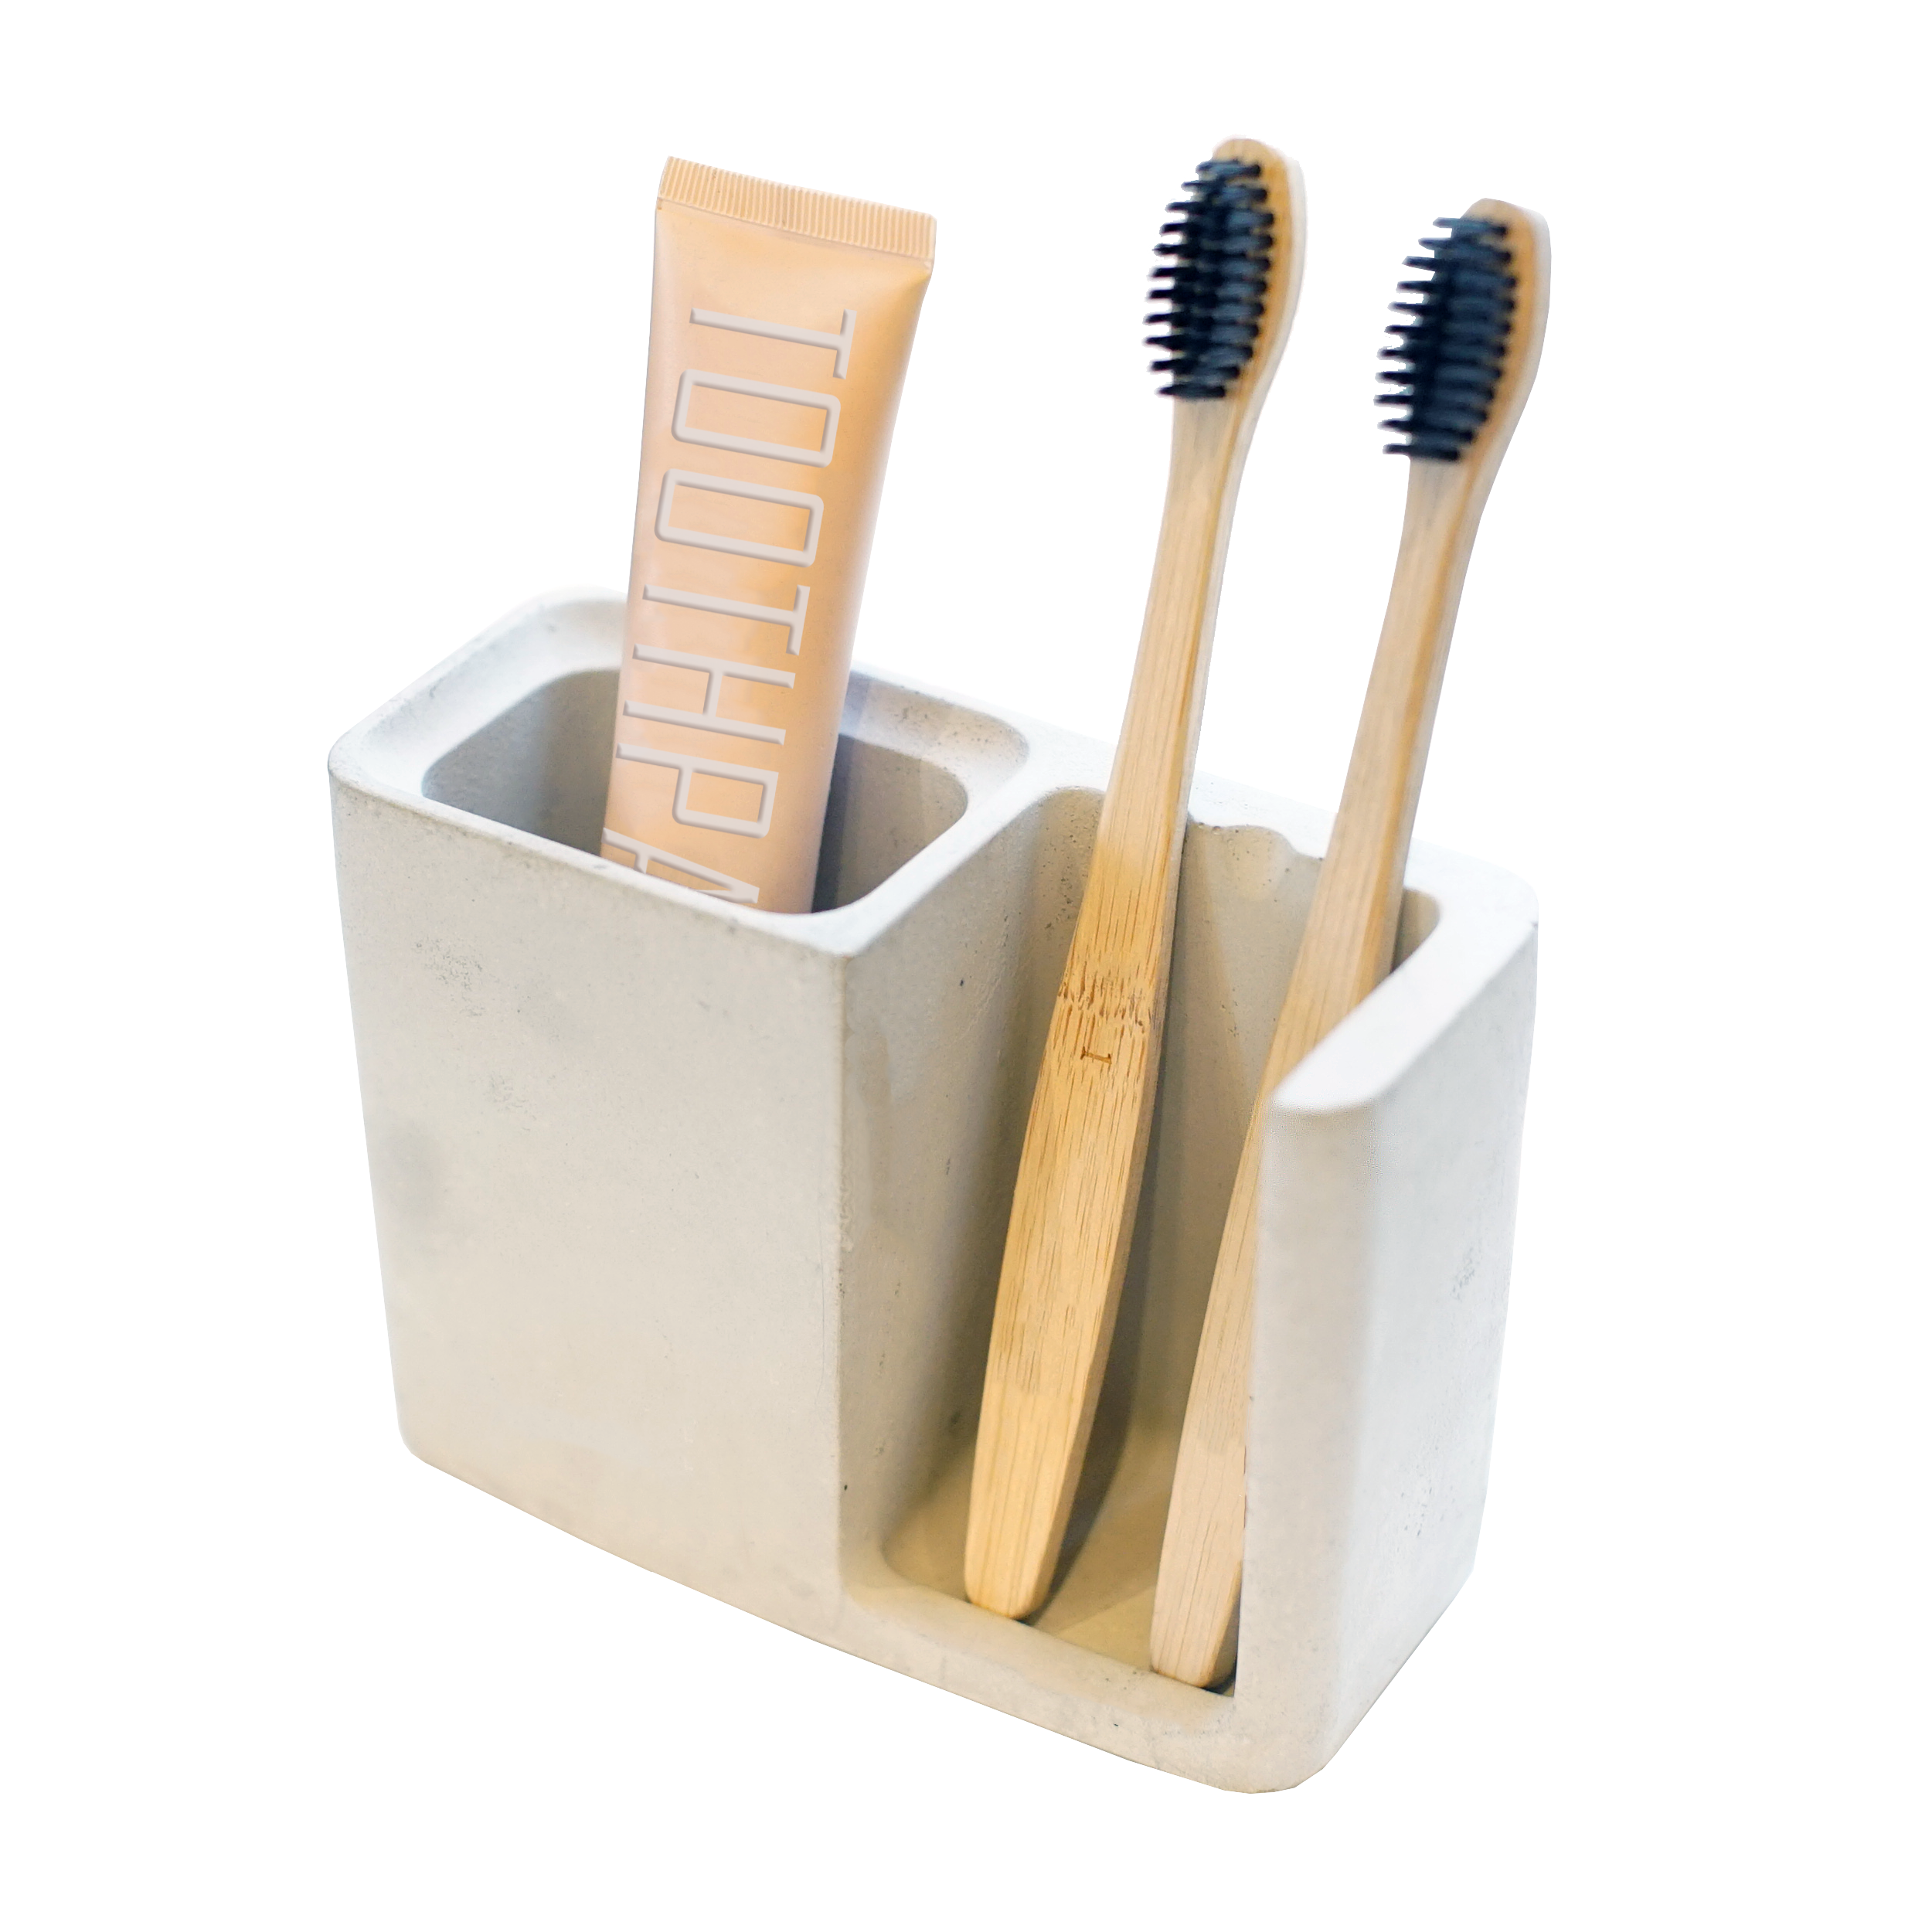 Concrete Toothbrush Holder - Urban Minimalist